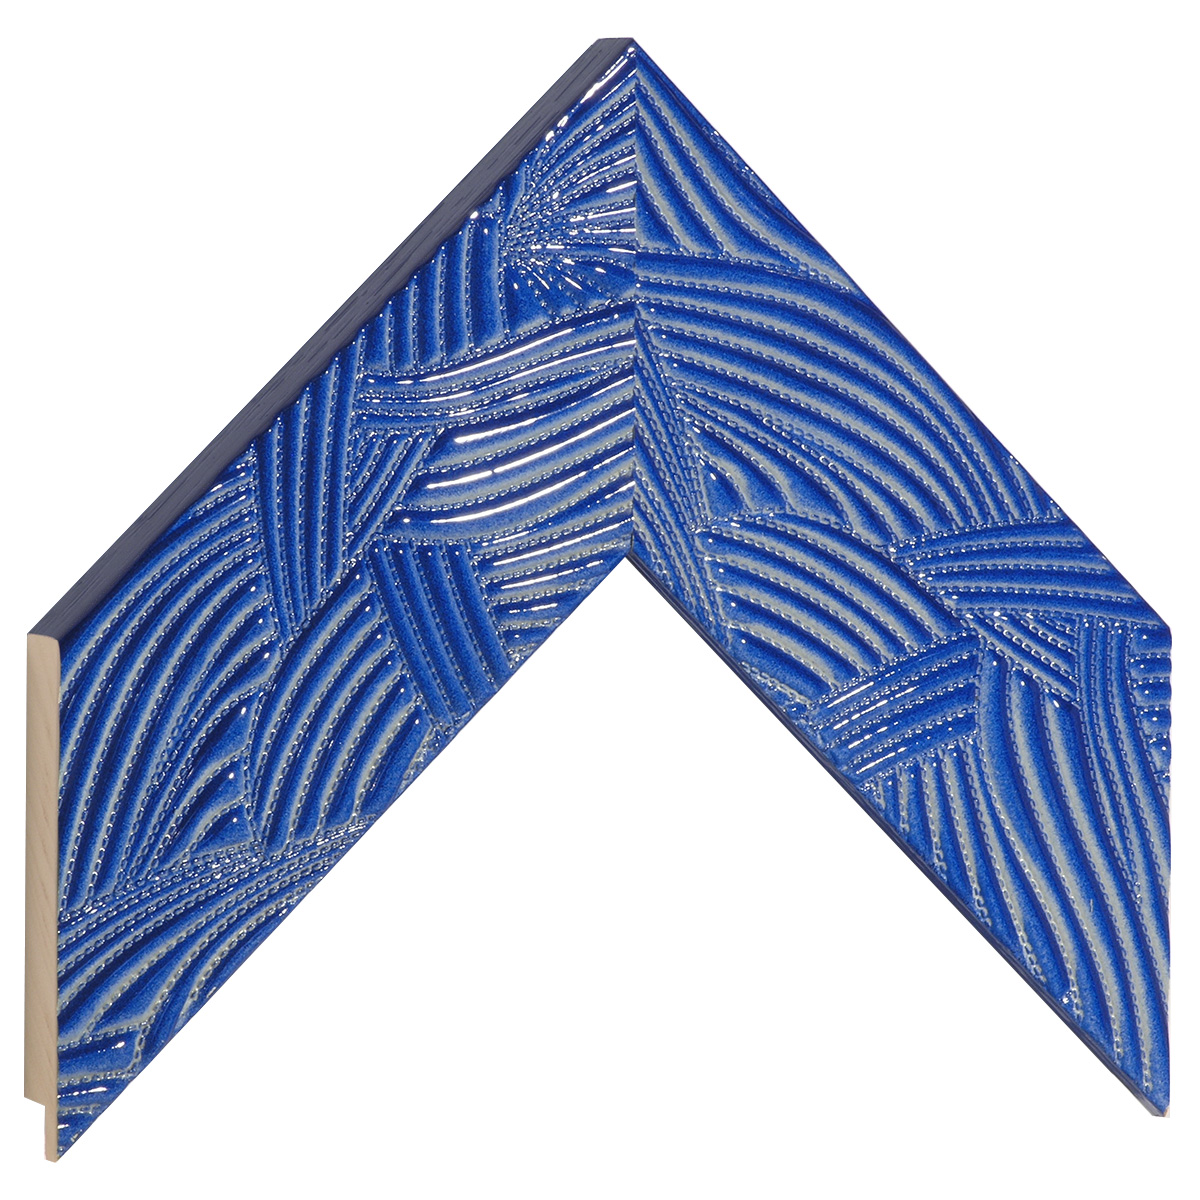 Moulding ayous 65mm - blue with relief decorations